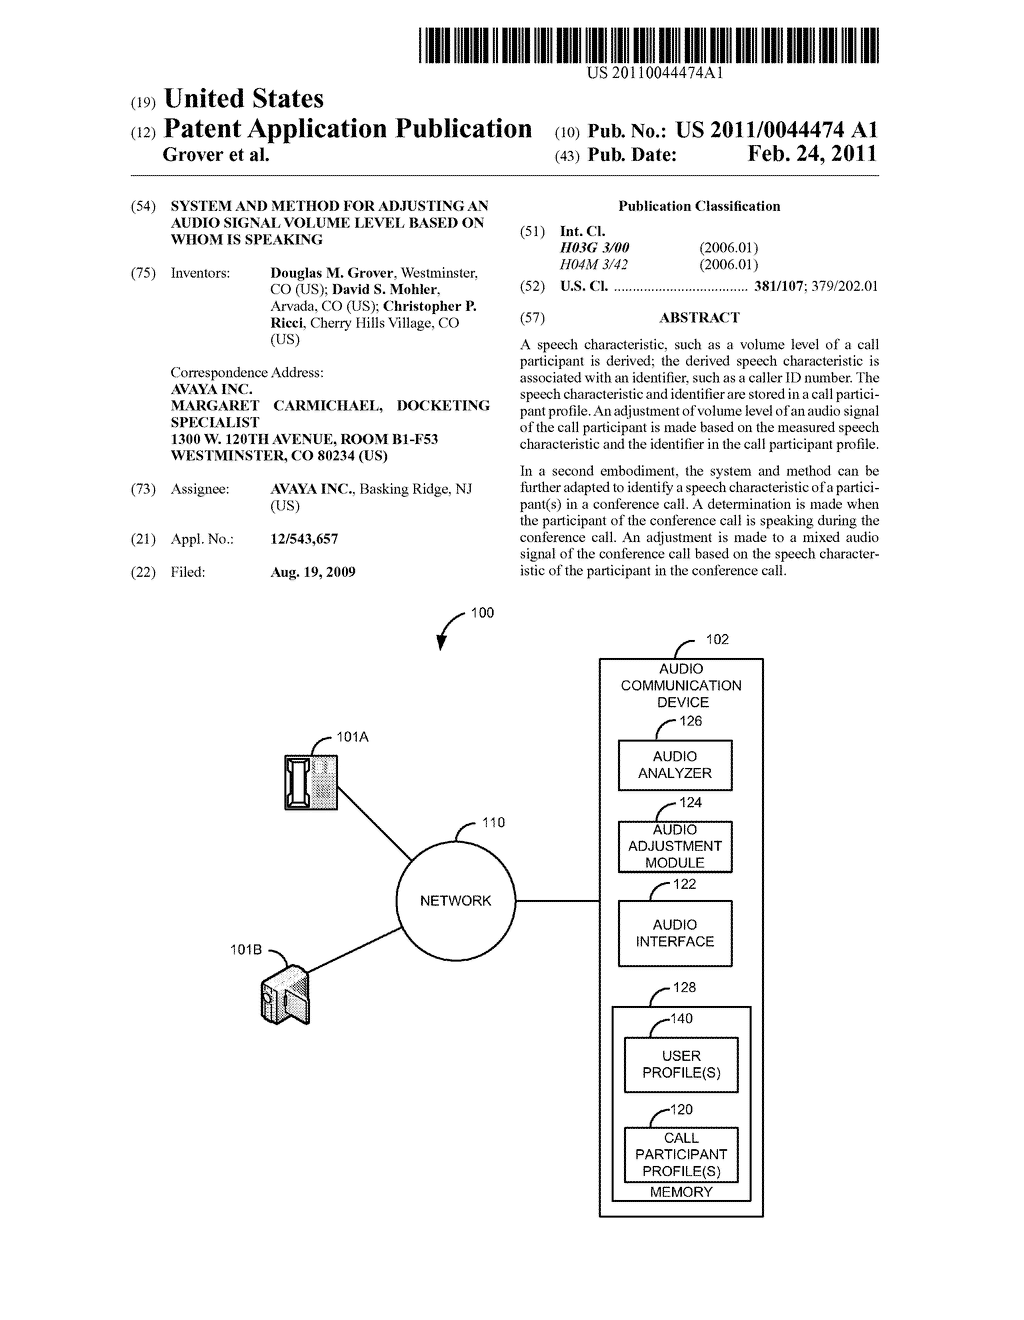 System and Method for Adjusting an Audio Signal Volume Level Based on Whom is Speaking - diagram, schematic, and image 01